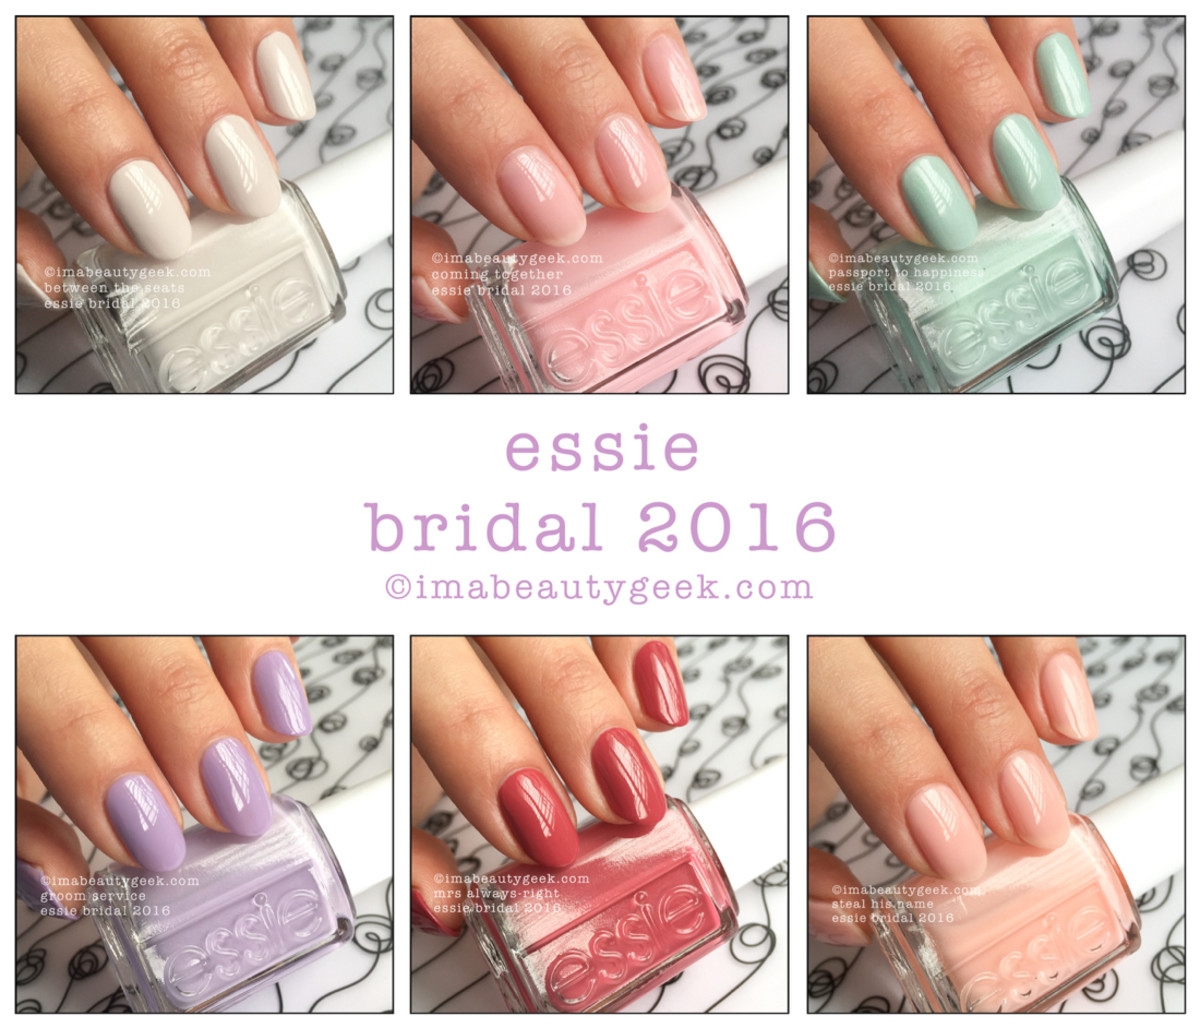 Essie Bridal 2016 Swatches and Review